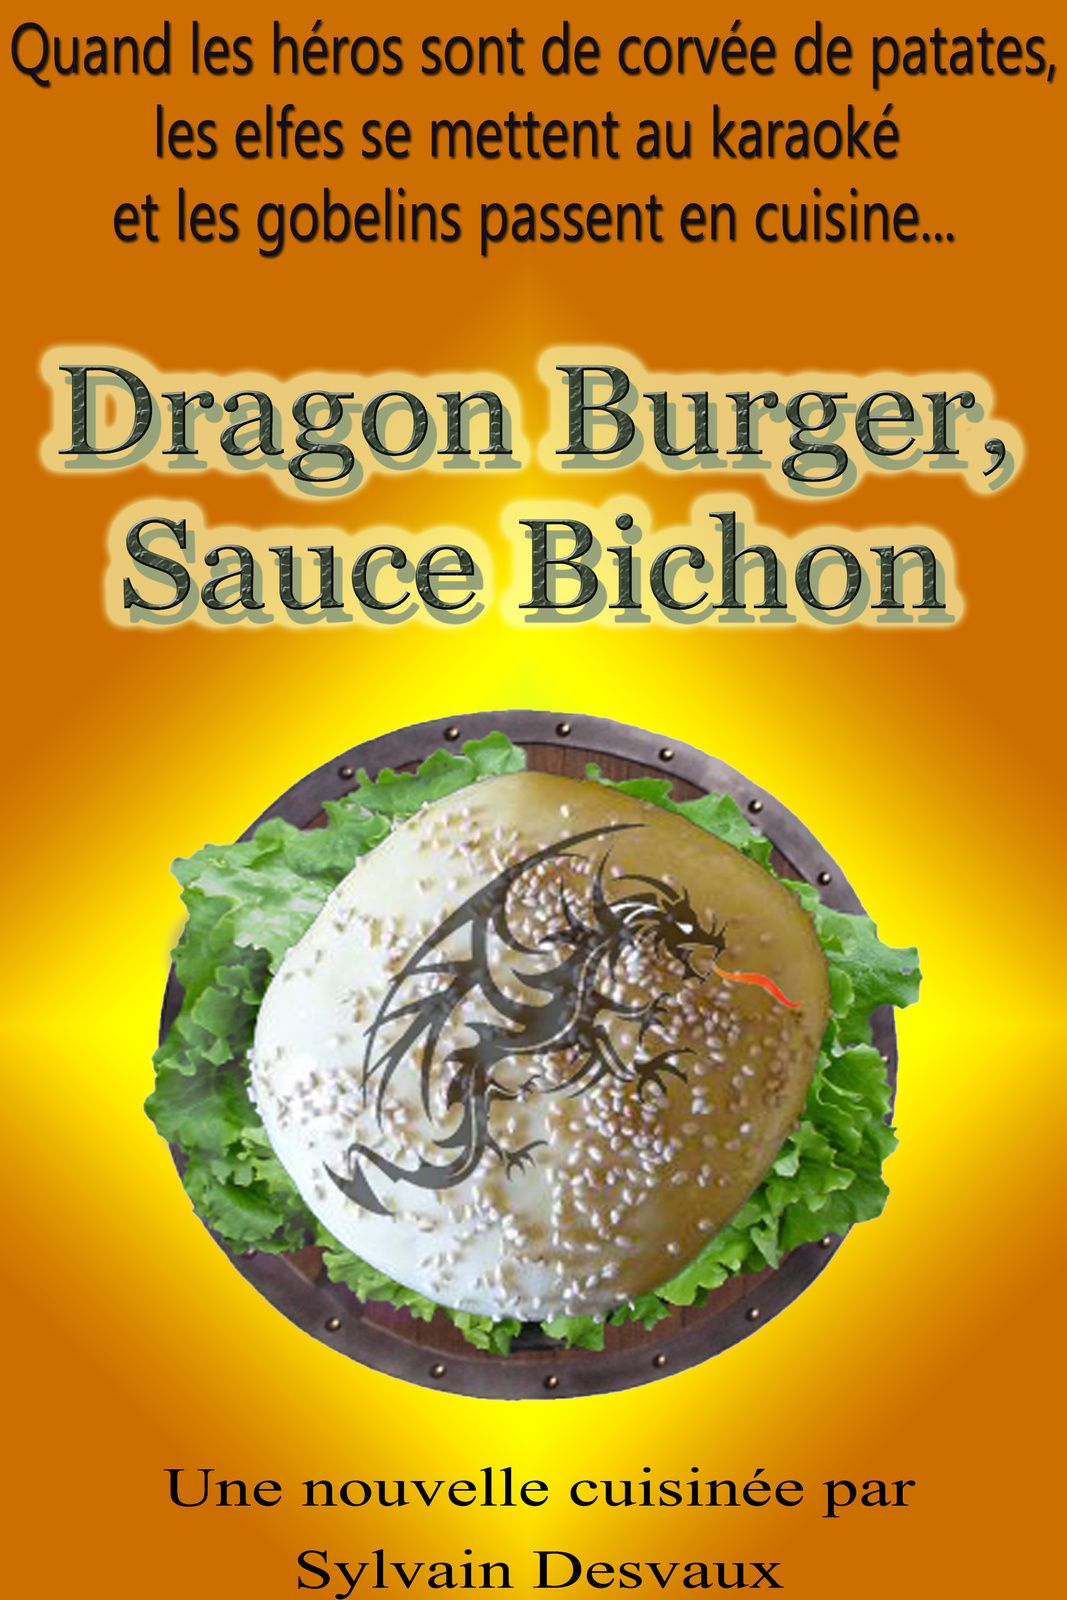 Dragon Burger Sauce Bichon